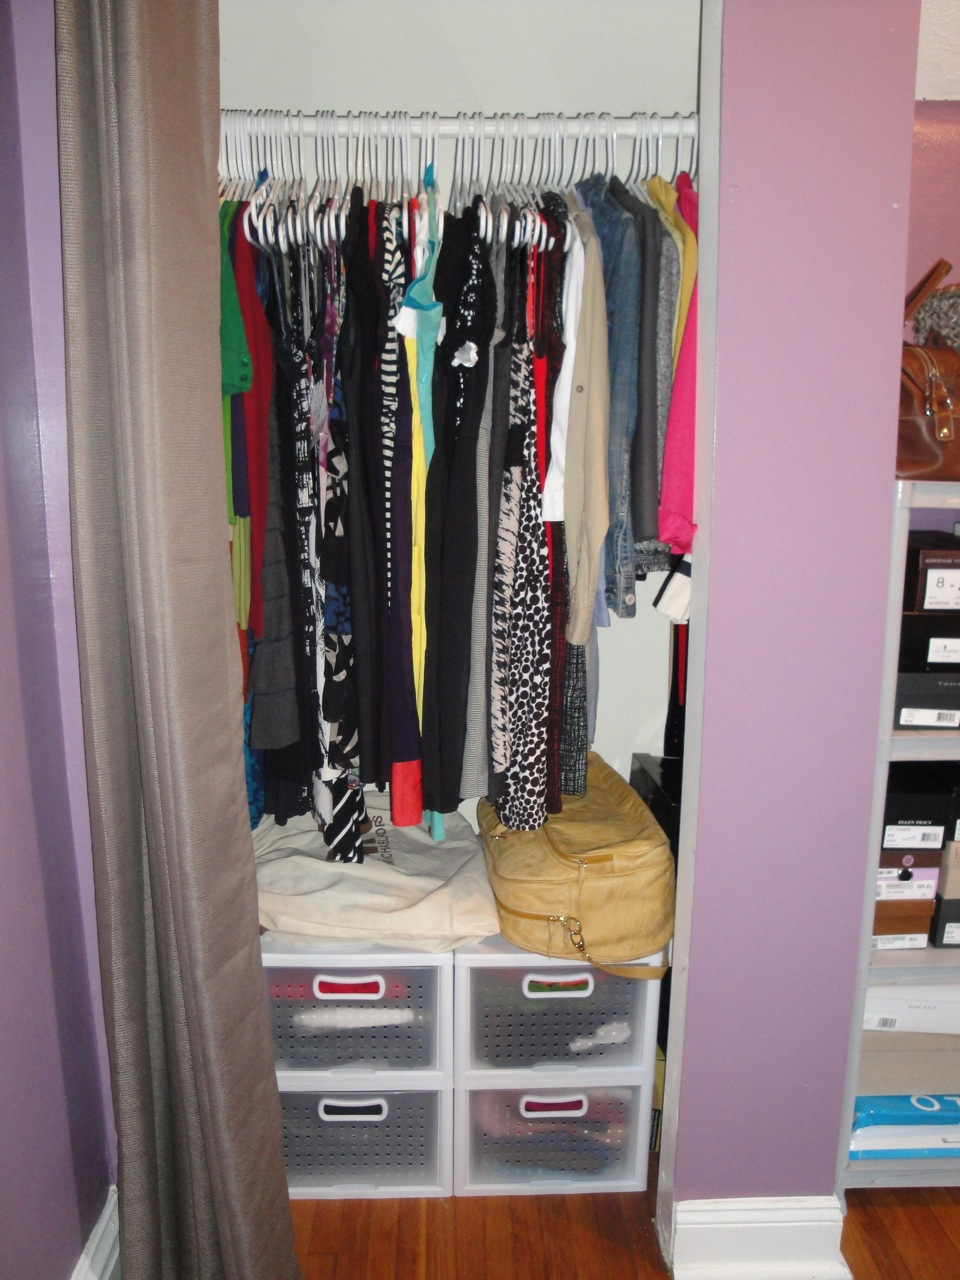 The Newly Improved And Organized Closet L To R Cardigans Dresses Casual Dressy Work Blazers Target Home Window Panel 24 99 On A Rod 9 Add